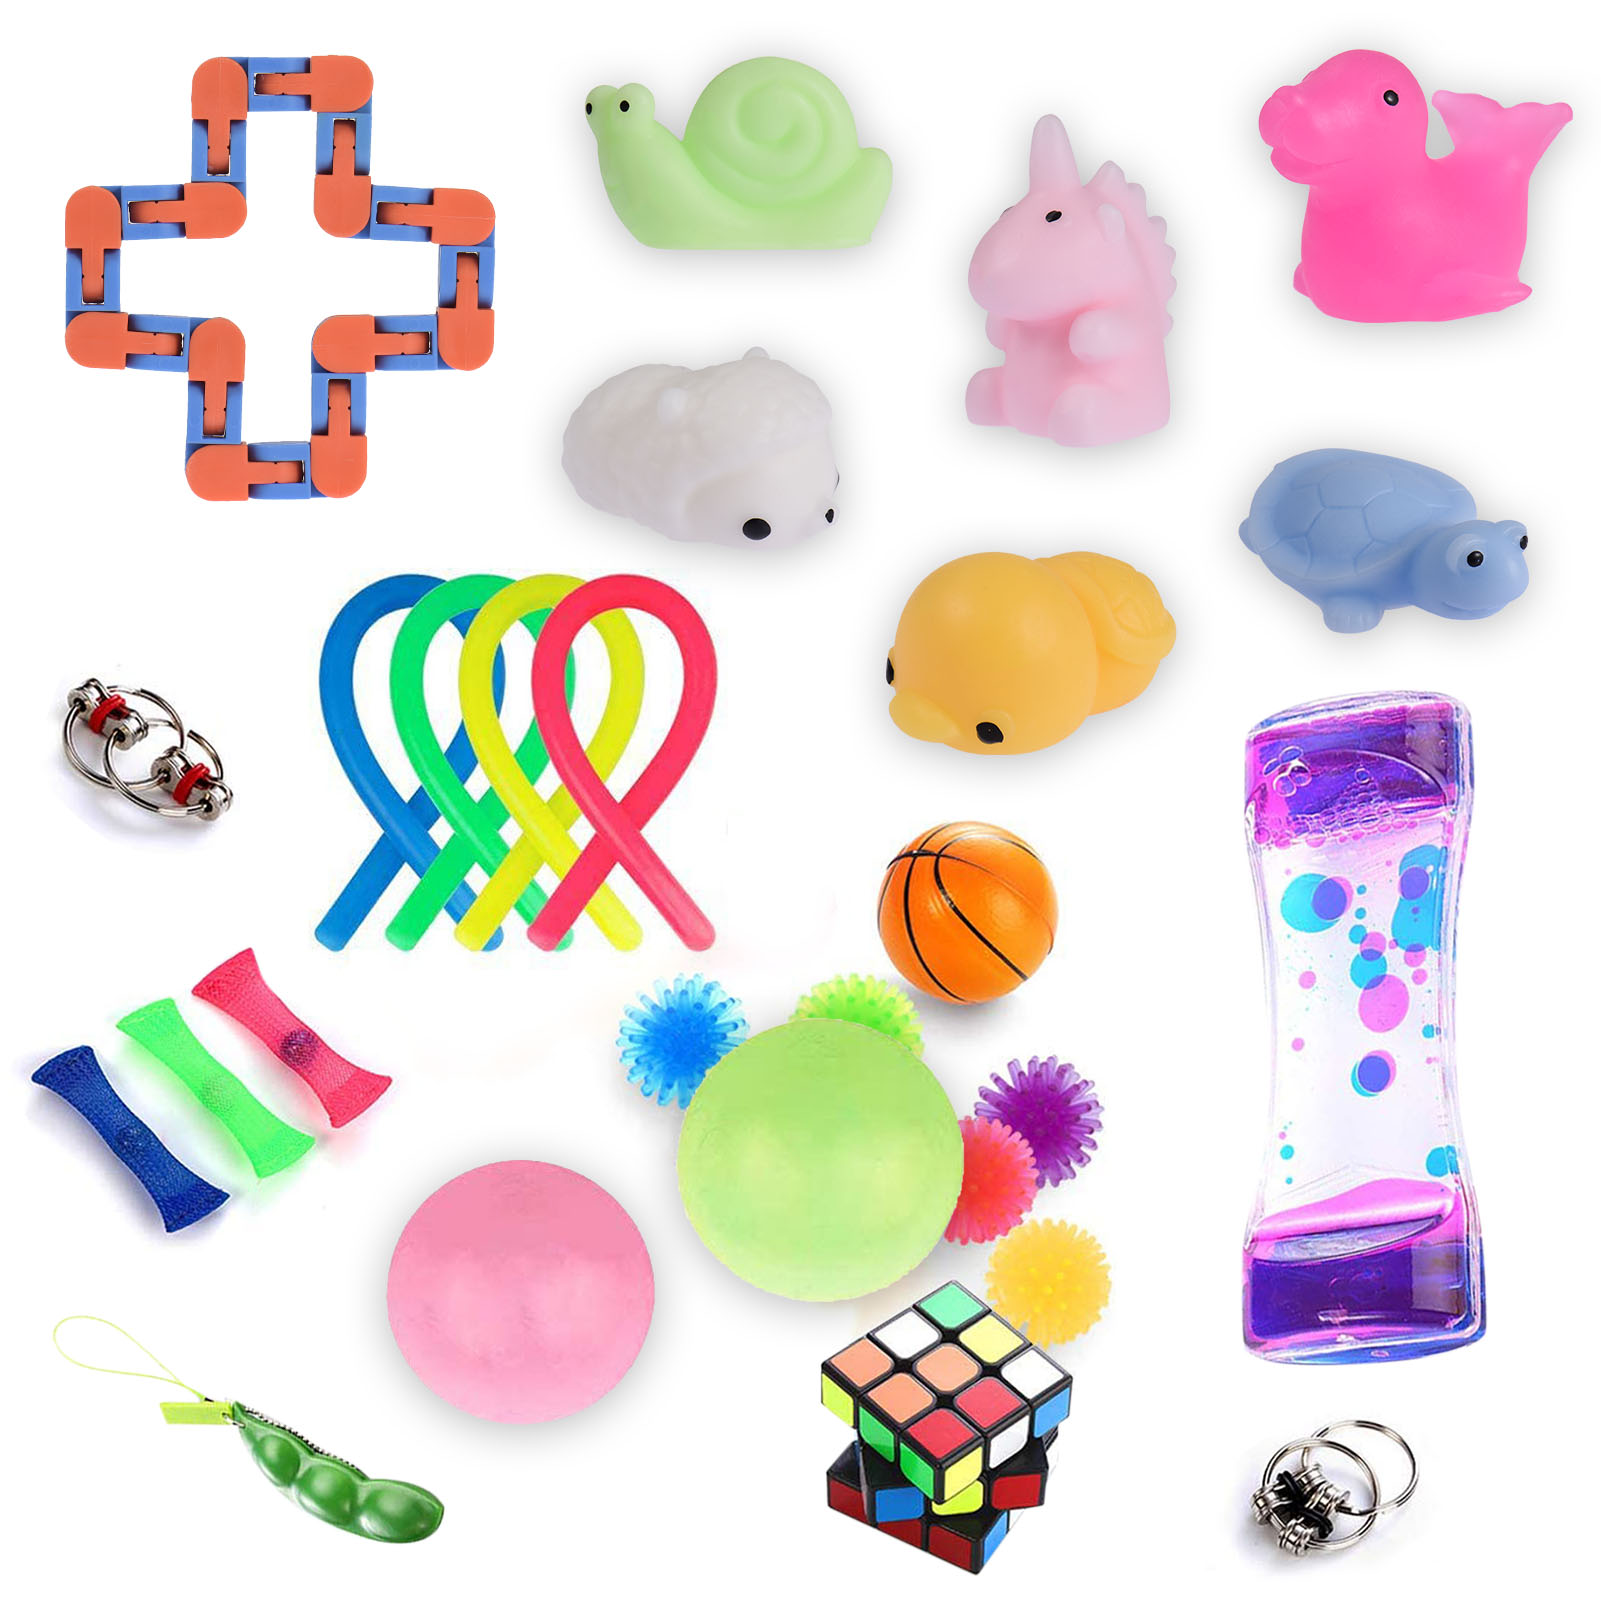 28 Pack Fidget Sensory Toys Set Sensory Fidget Toys Set Stress Anxiety Relief Sensory Toy Figet Toys Anti Stress Toy Set enlarge